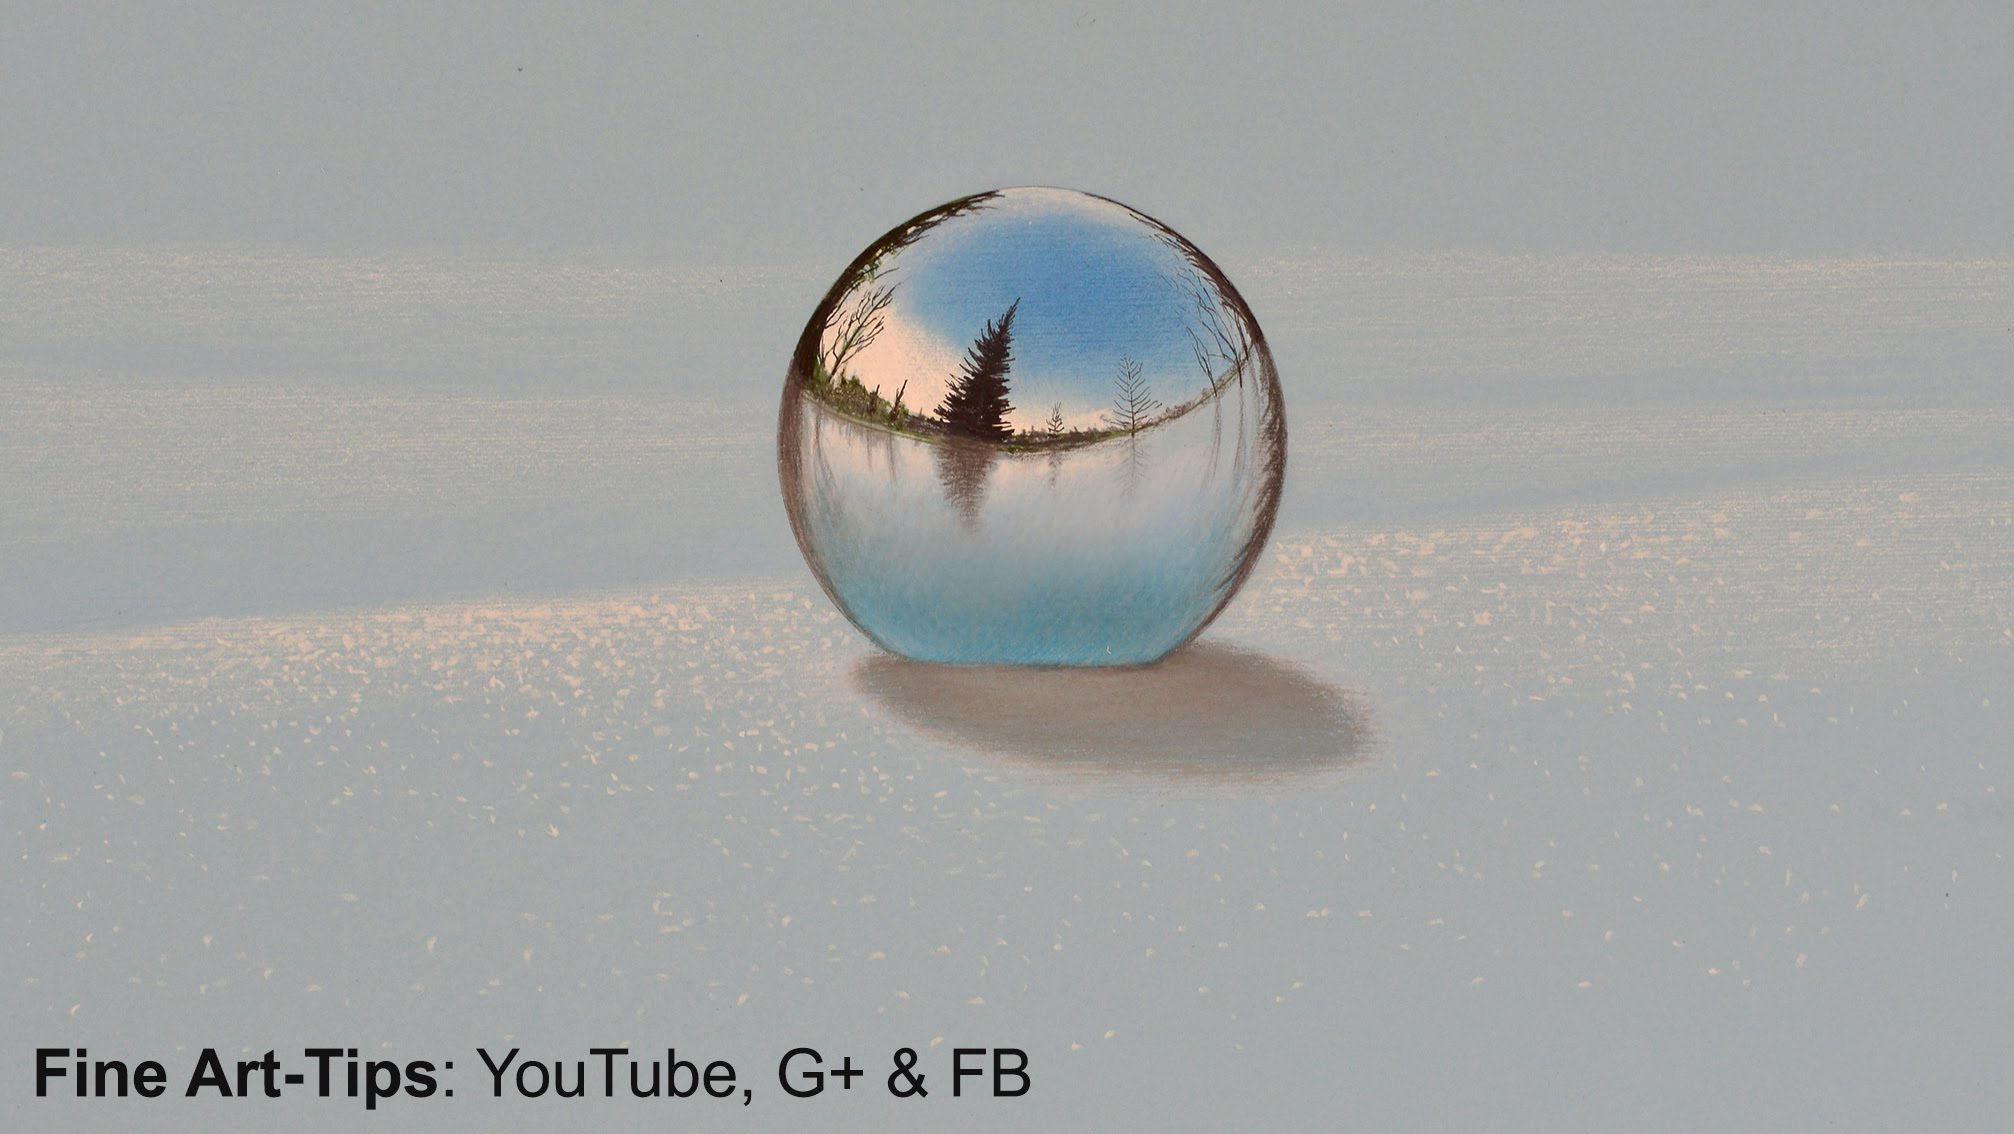 2014x1134 How To Draw A Chrome Sphere On The Snow